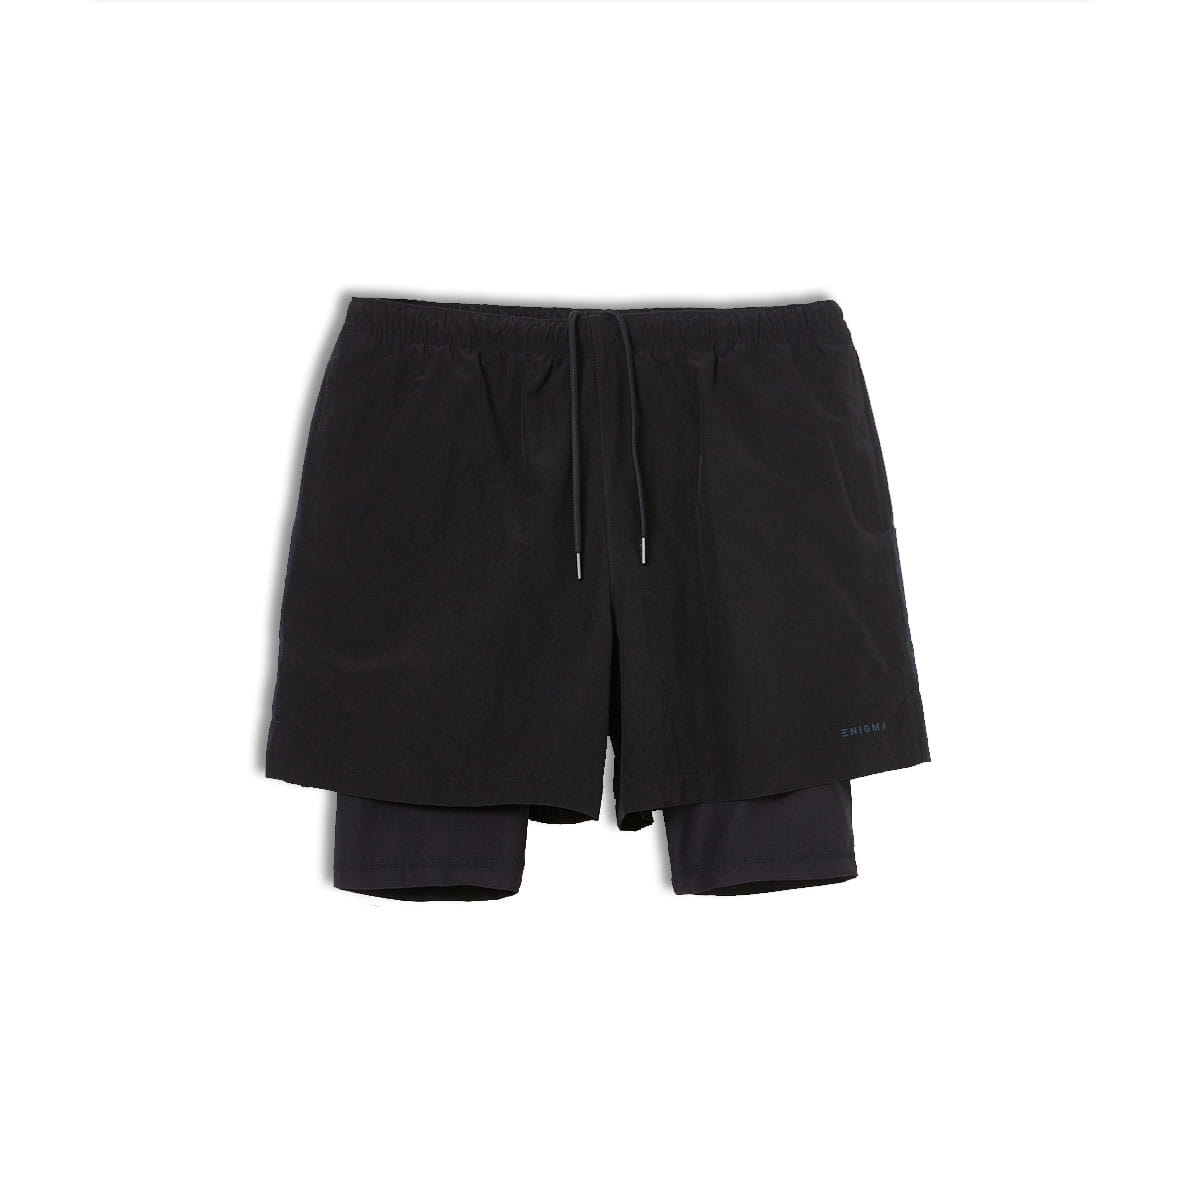 [ENIGMA] LAYERED SWIM SHORTS 'BLACK/NAVY'